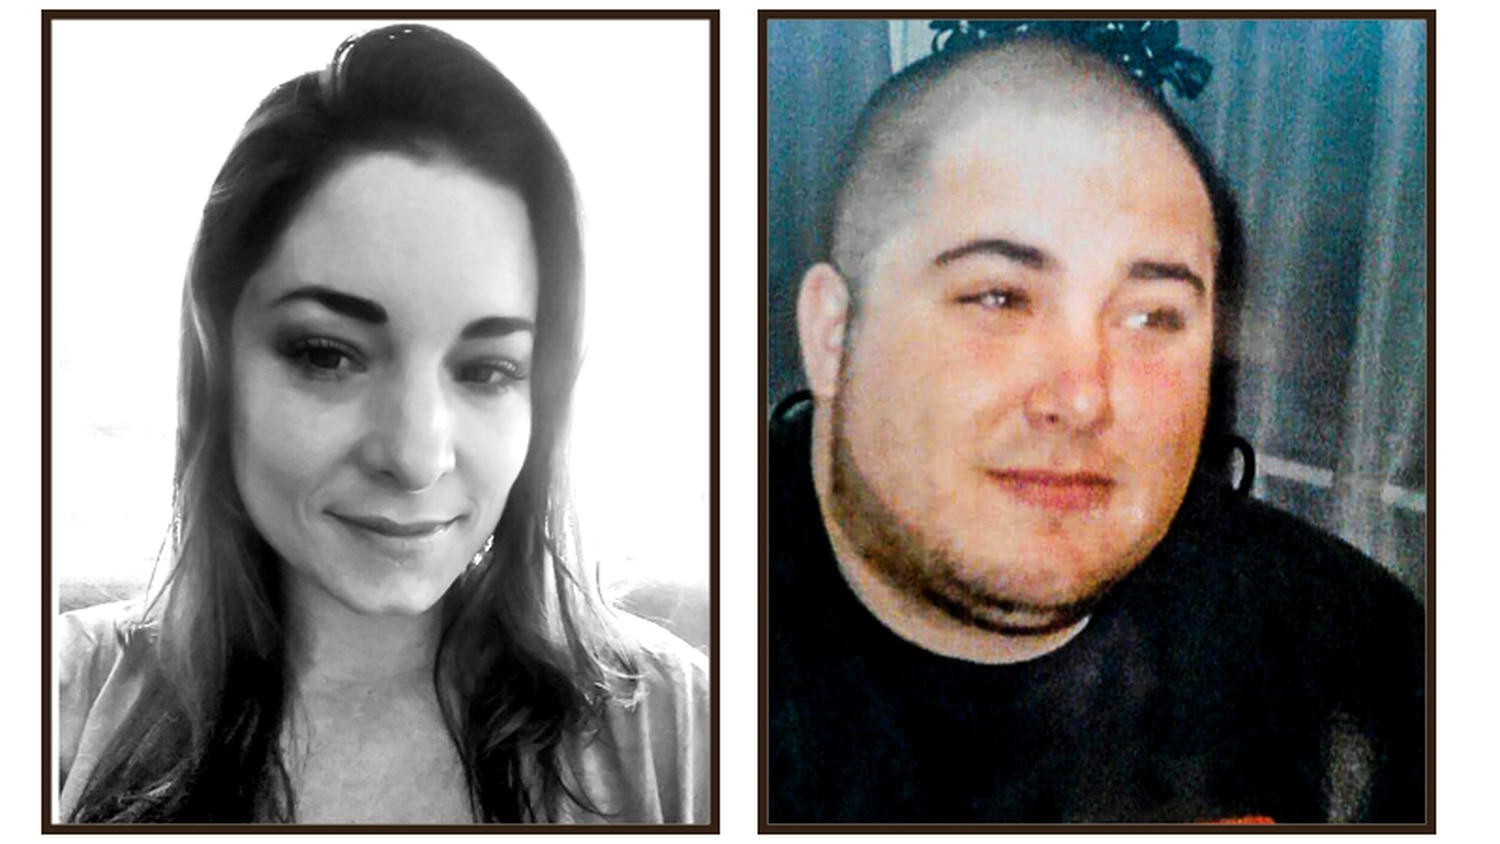 Matthew Rodriguez has bipolar disorder and schizophrenia, his sister Megan says, diseases that have put him into Northern New Mexico's threadbare system of mental health care for years. Megan (left) visits him weekly.